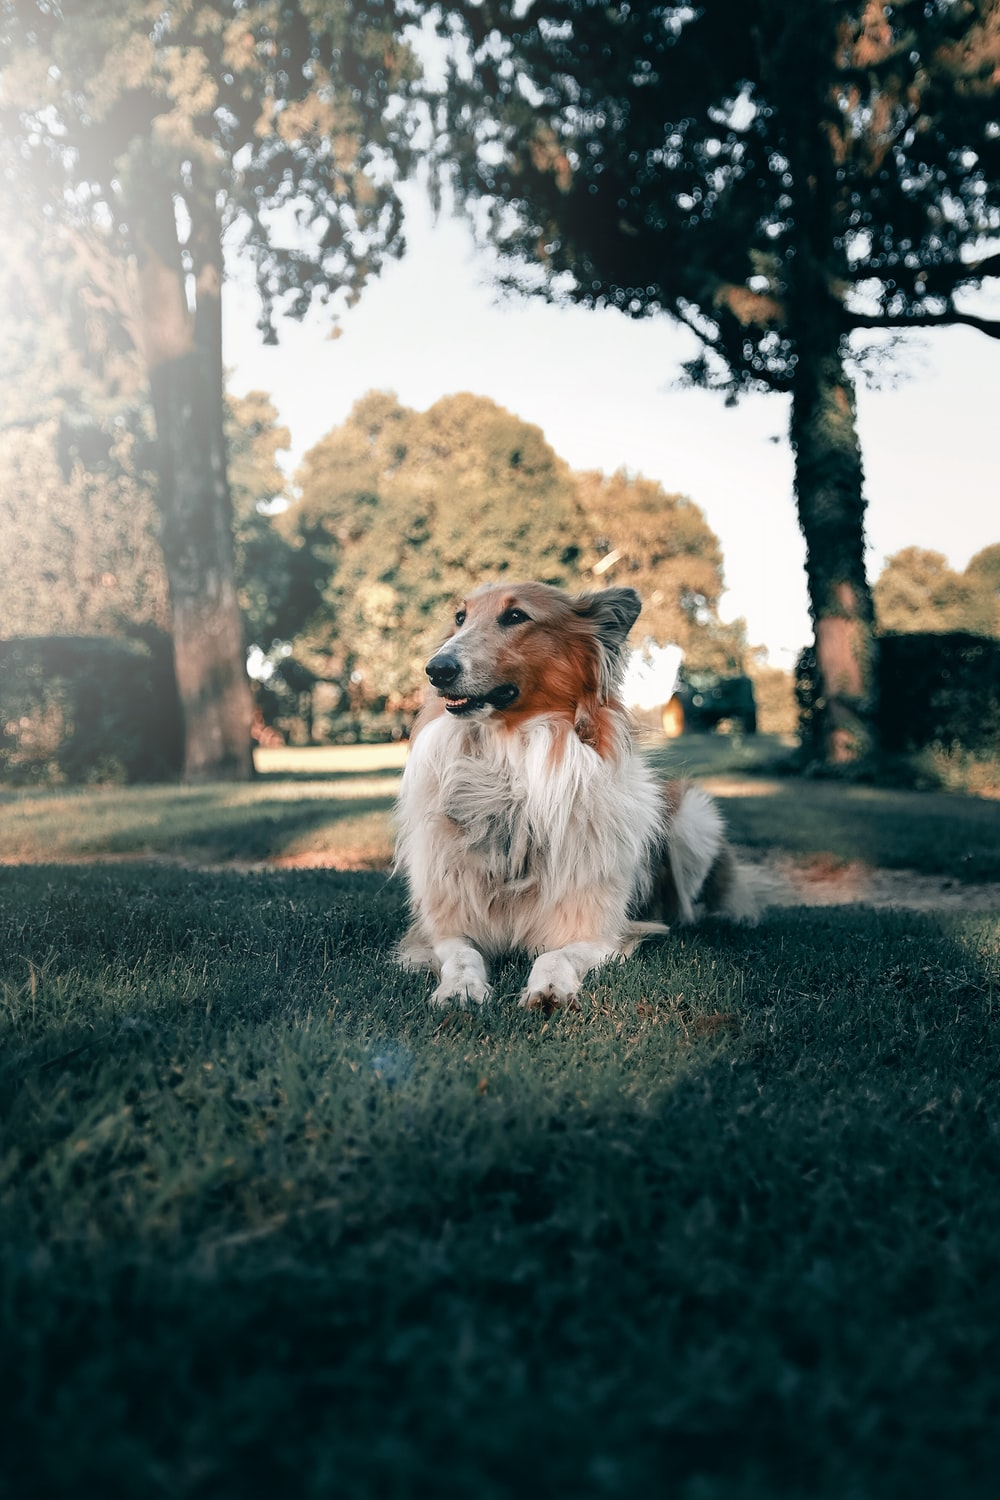 white and brown long coated dog sitting on ground during daytime